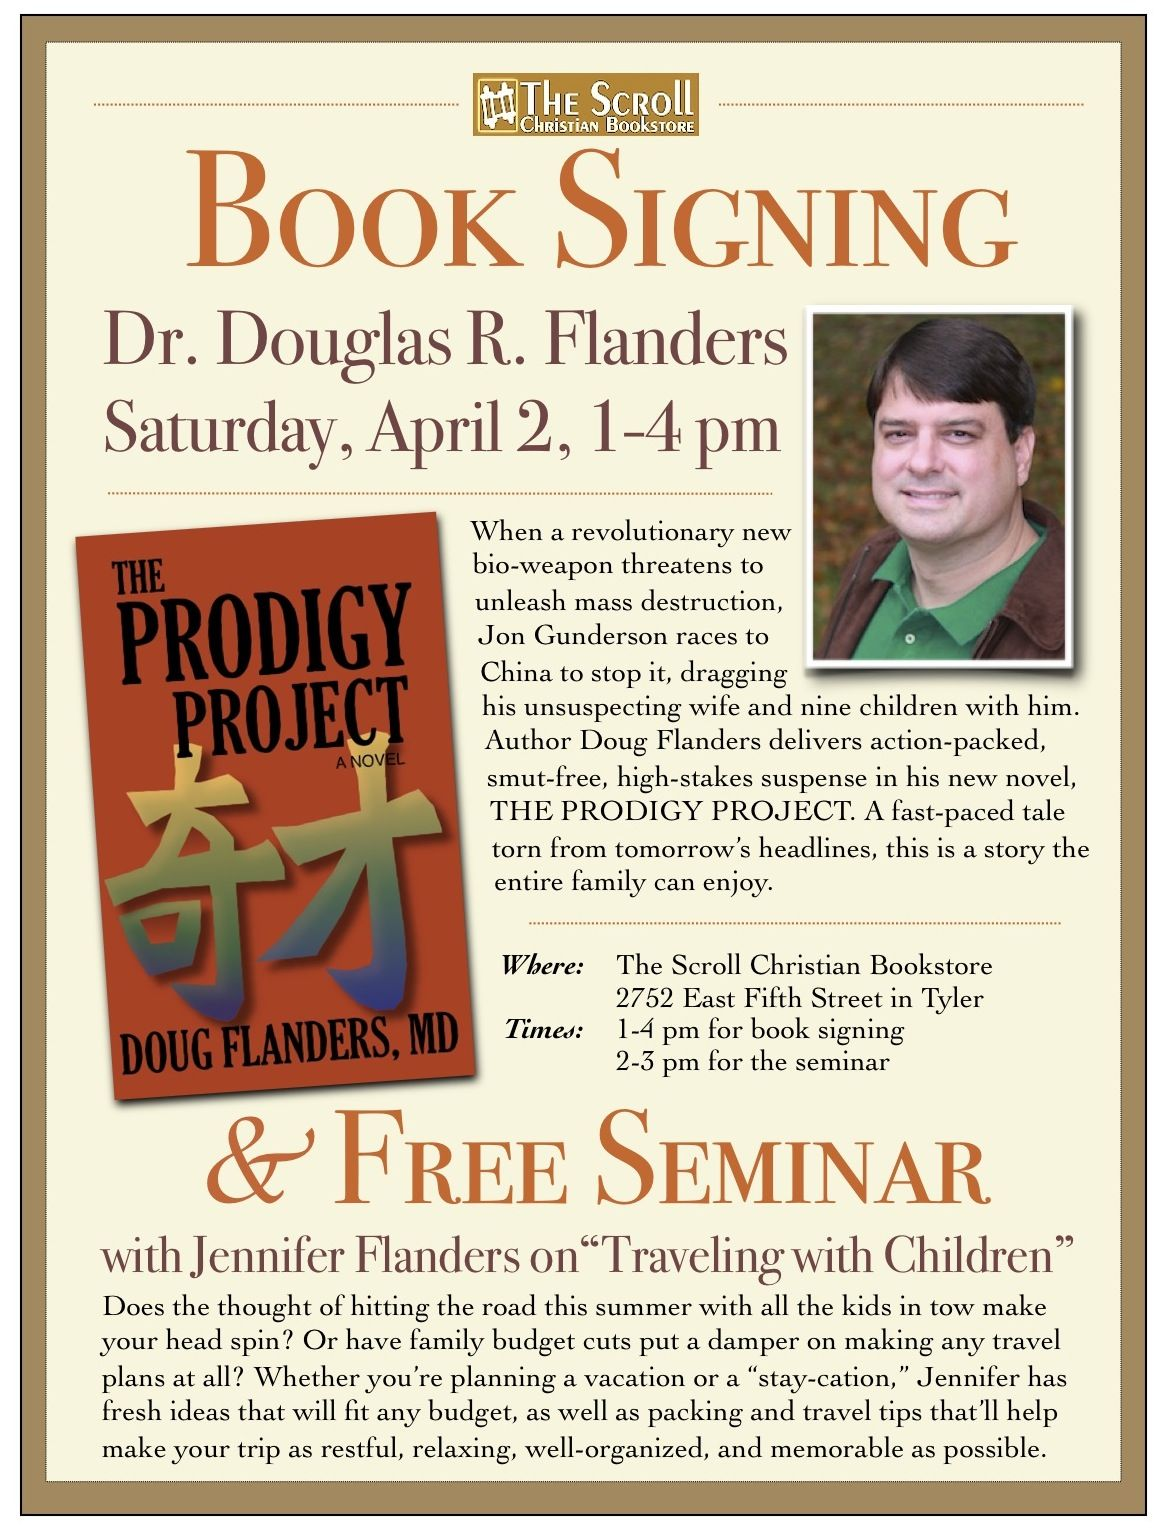 Book Signing/ Free Seminar at The Scroll | Free seminar ...